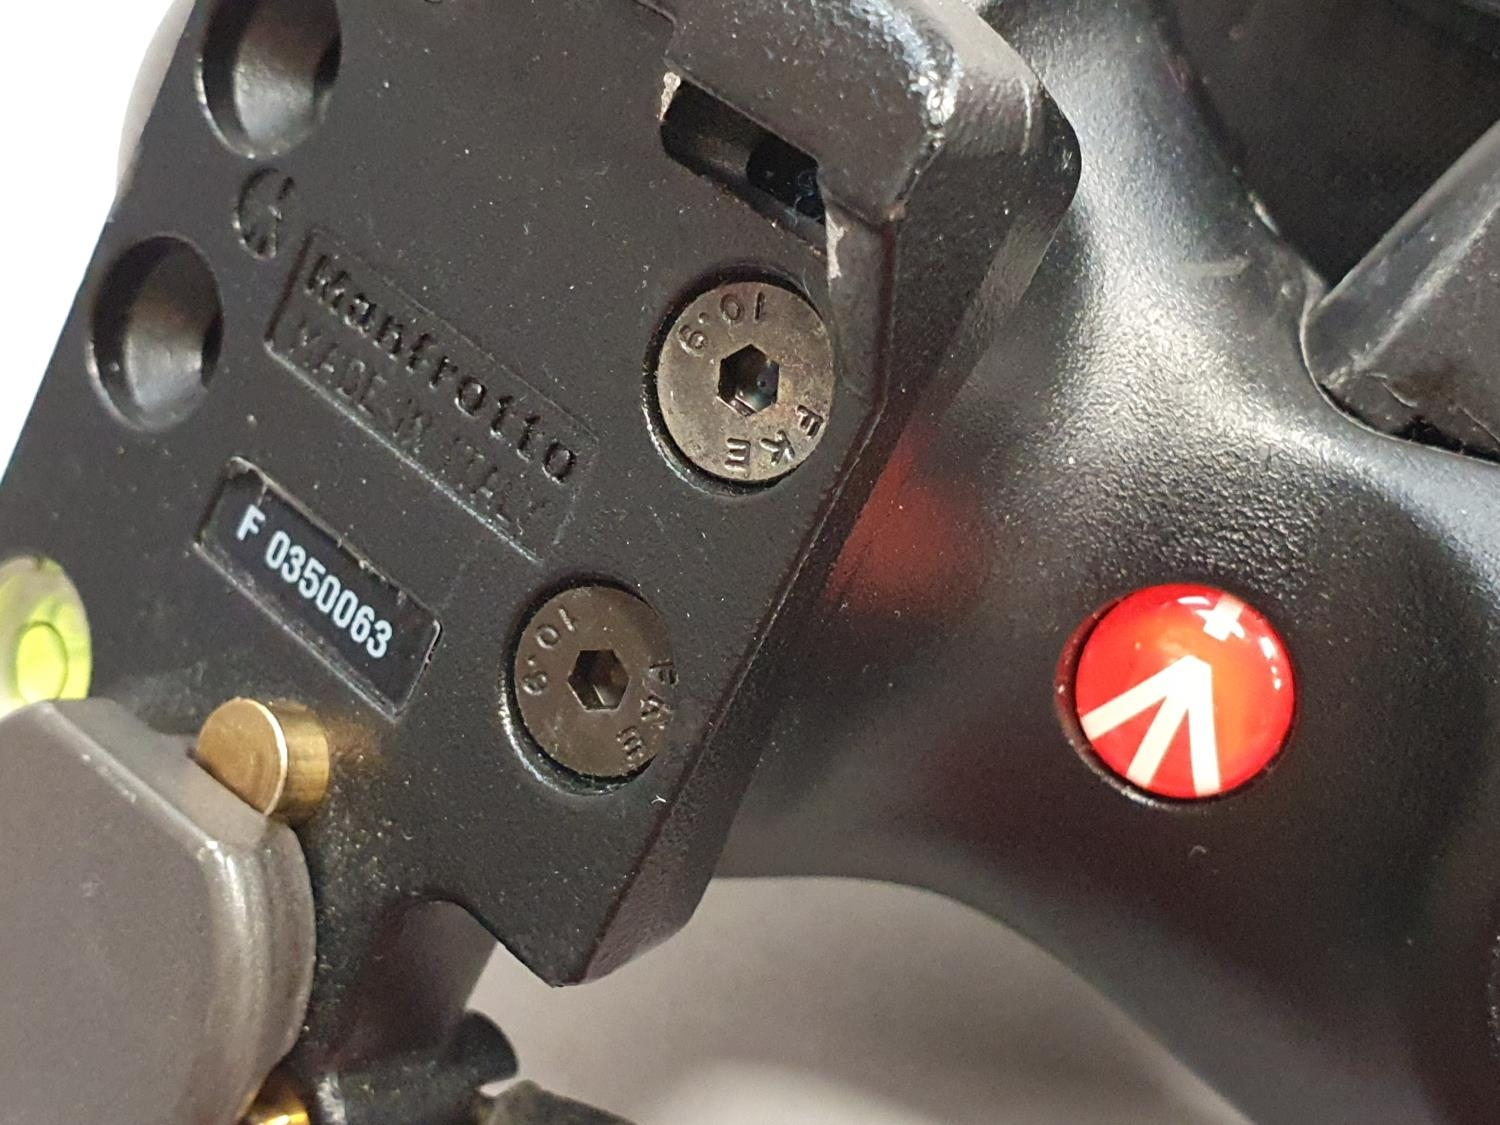 Manfrotto camera grip with other accessories. - Image 2 of 5